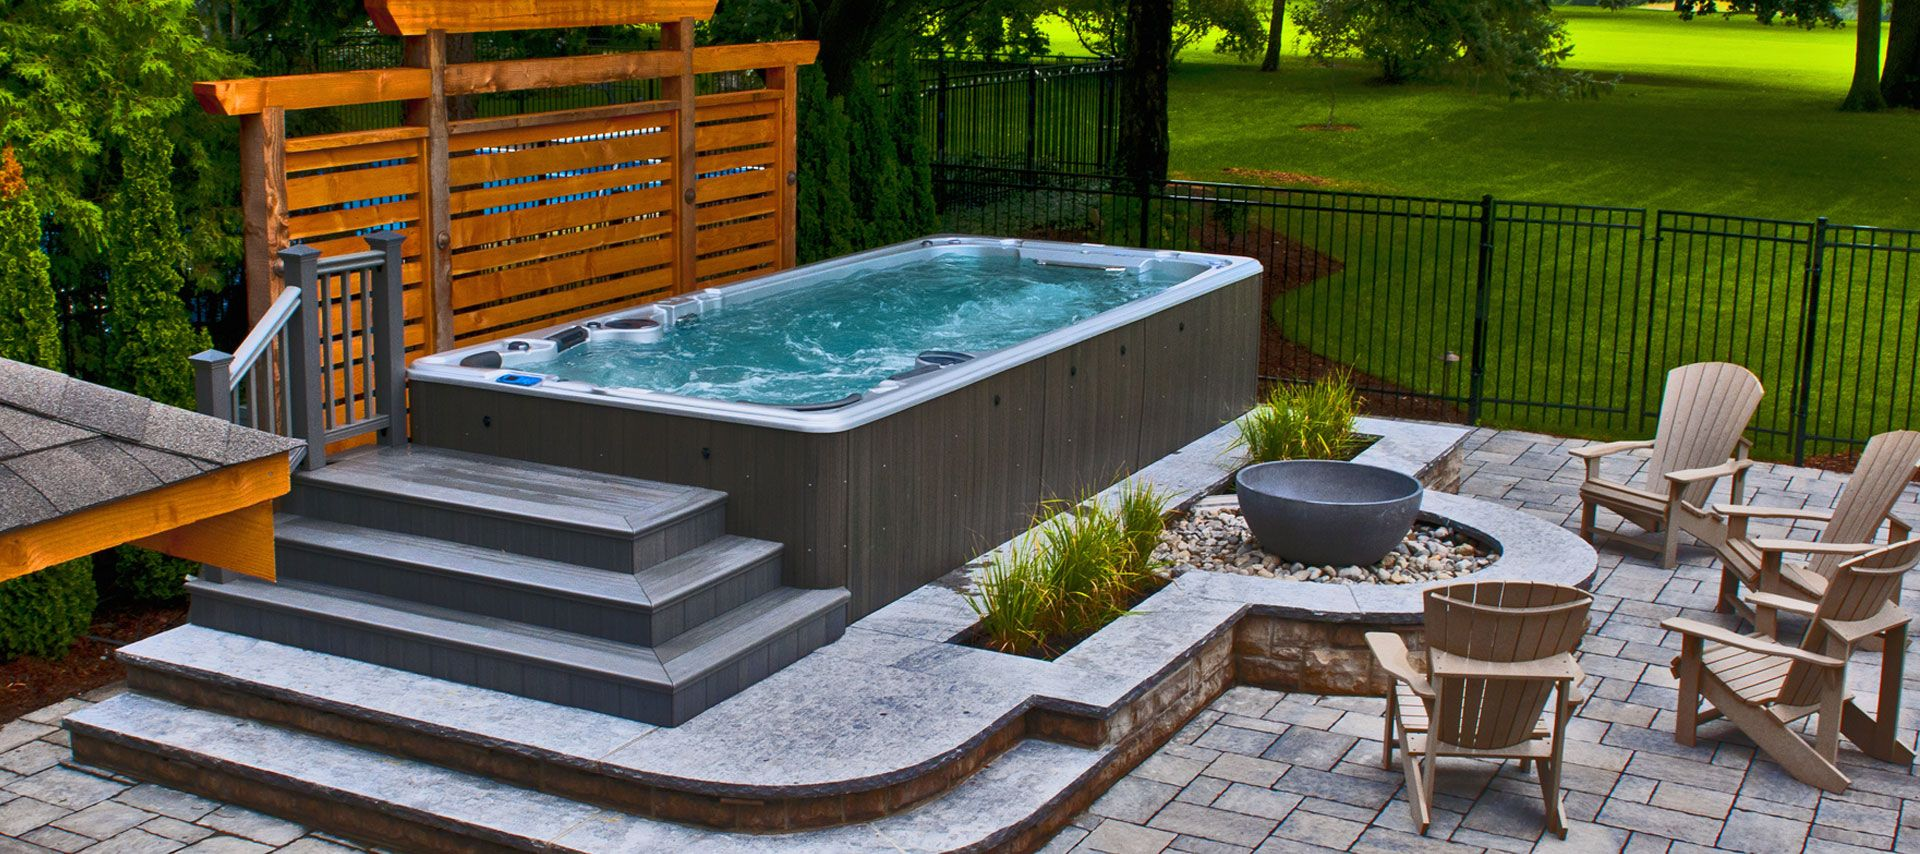 Jacuzzi Pool Dimensions Hydropool Hot Tubs Swim Spas And Accessories Jacuzzi